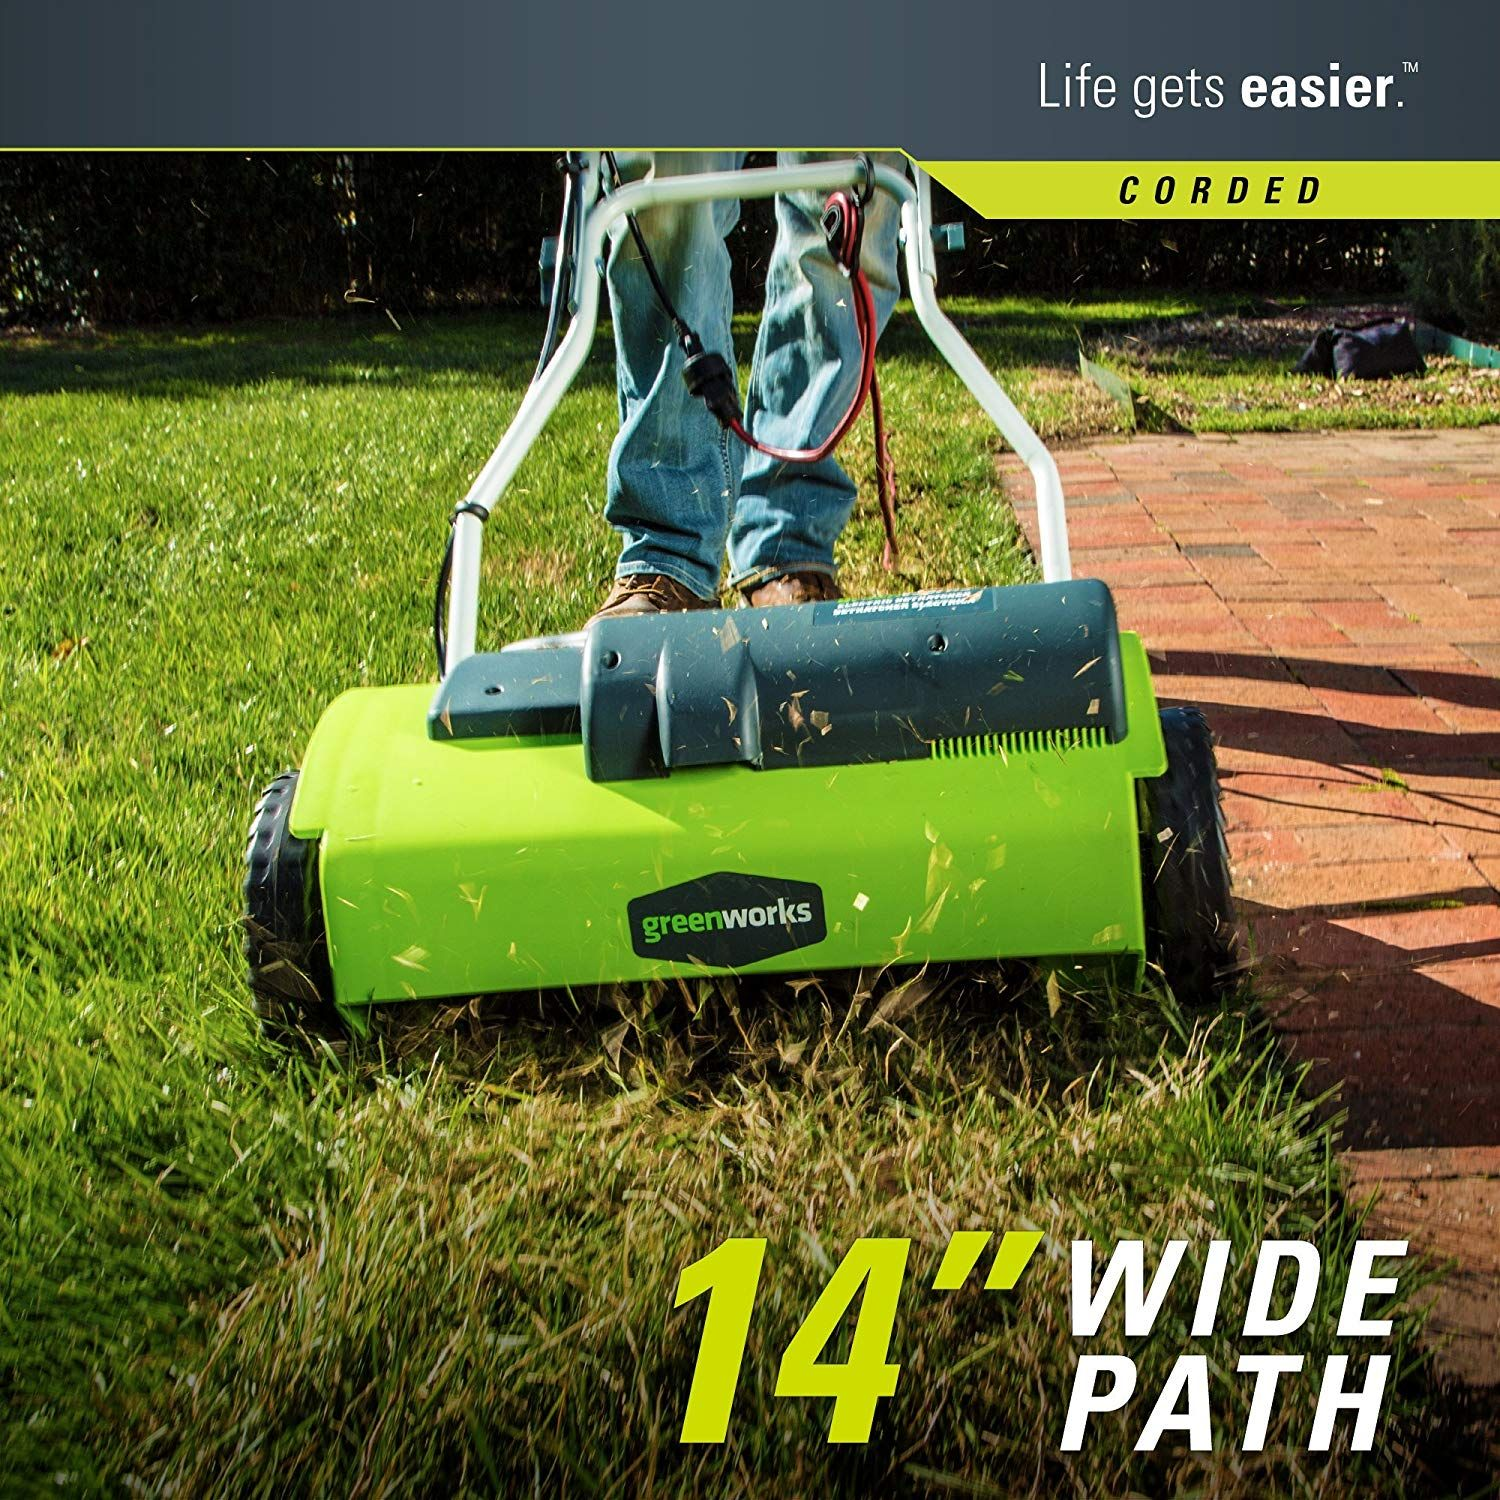 Greenworks Dethatcher 272022 14 Corded 10 Amp Best Lawn Mower Lawn Mower Tractor Landscaping Tools